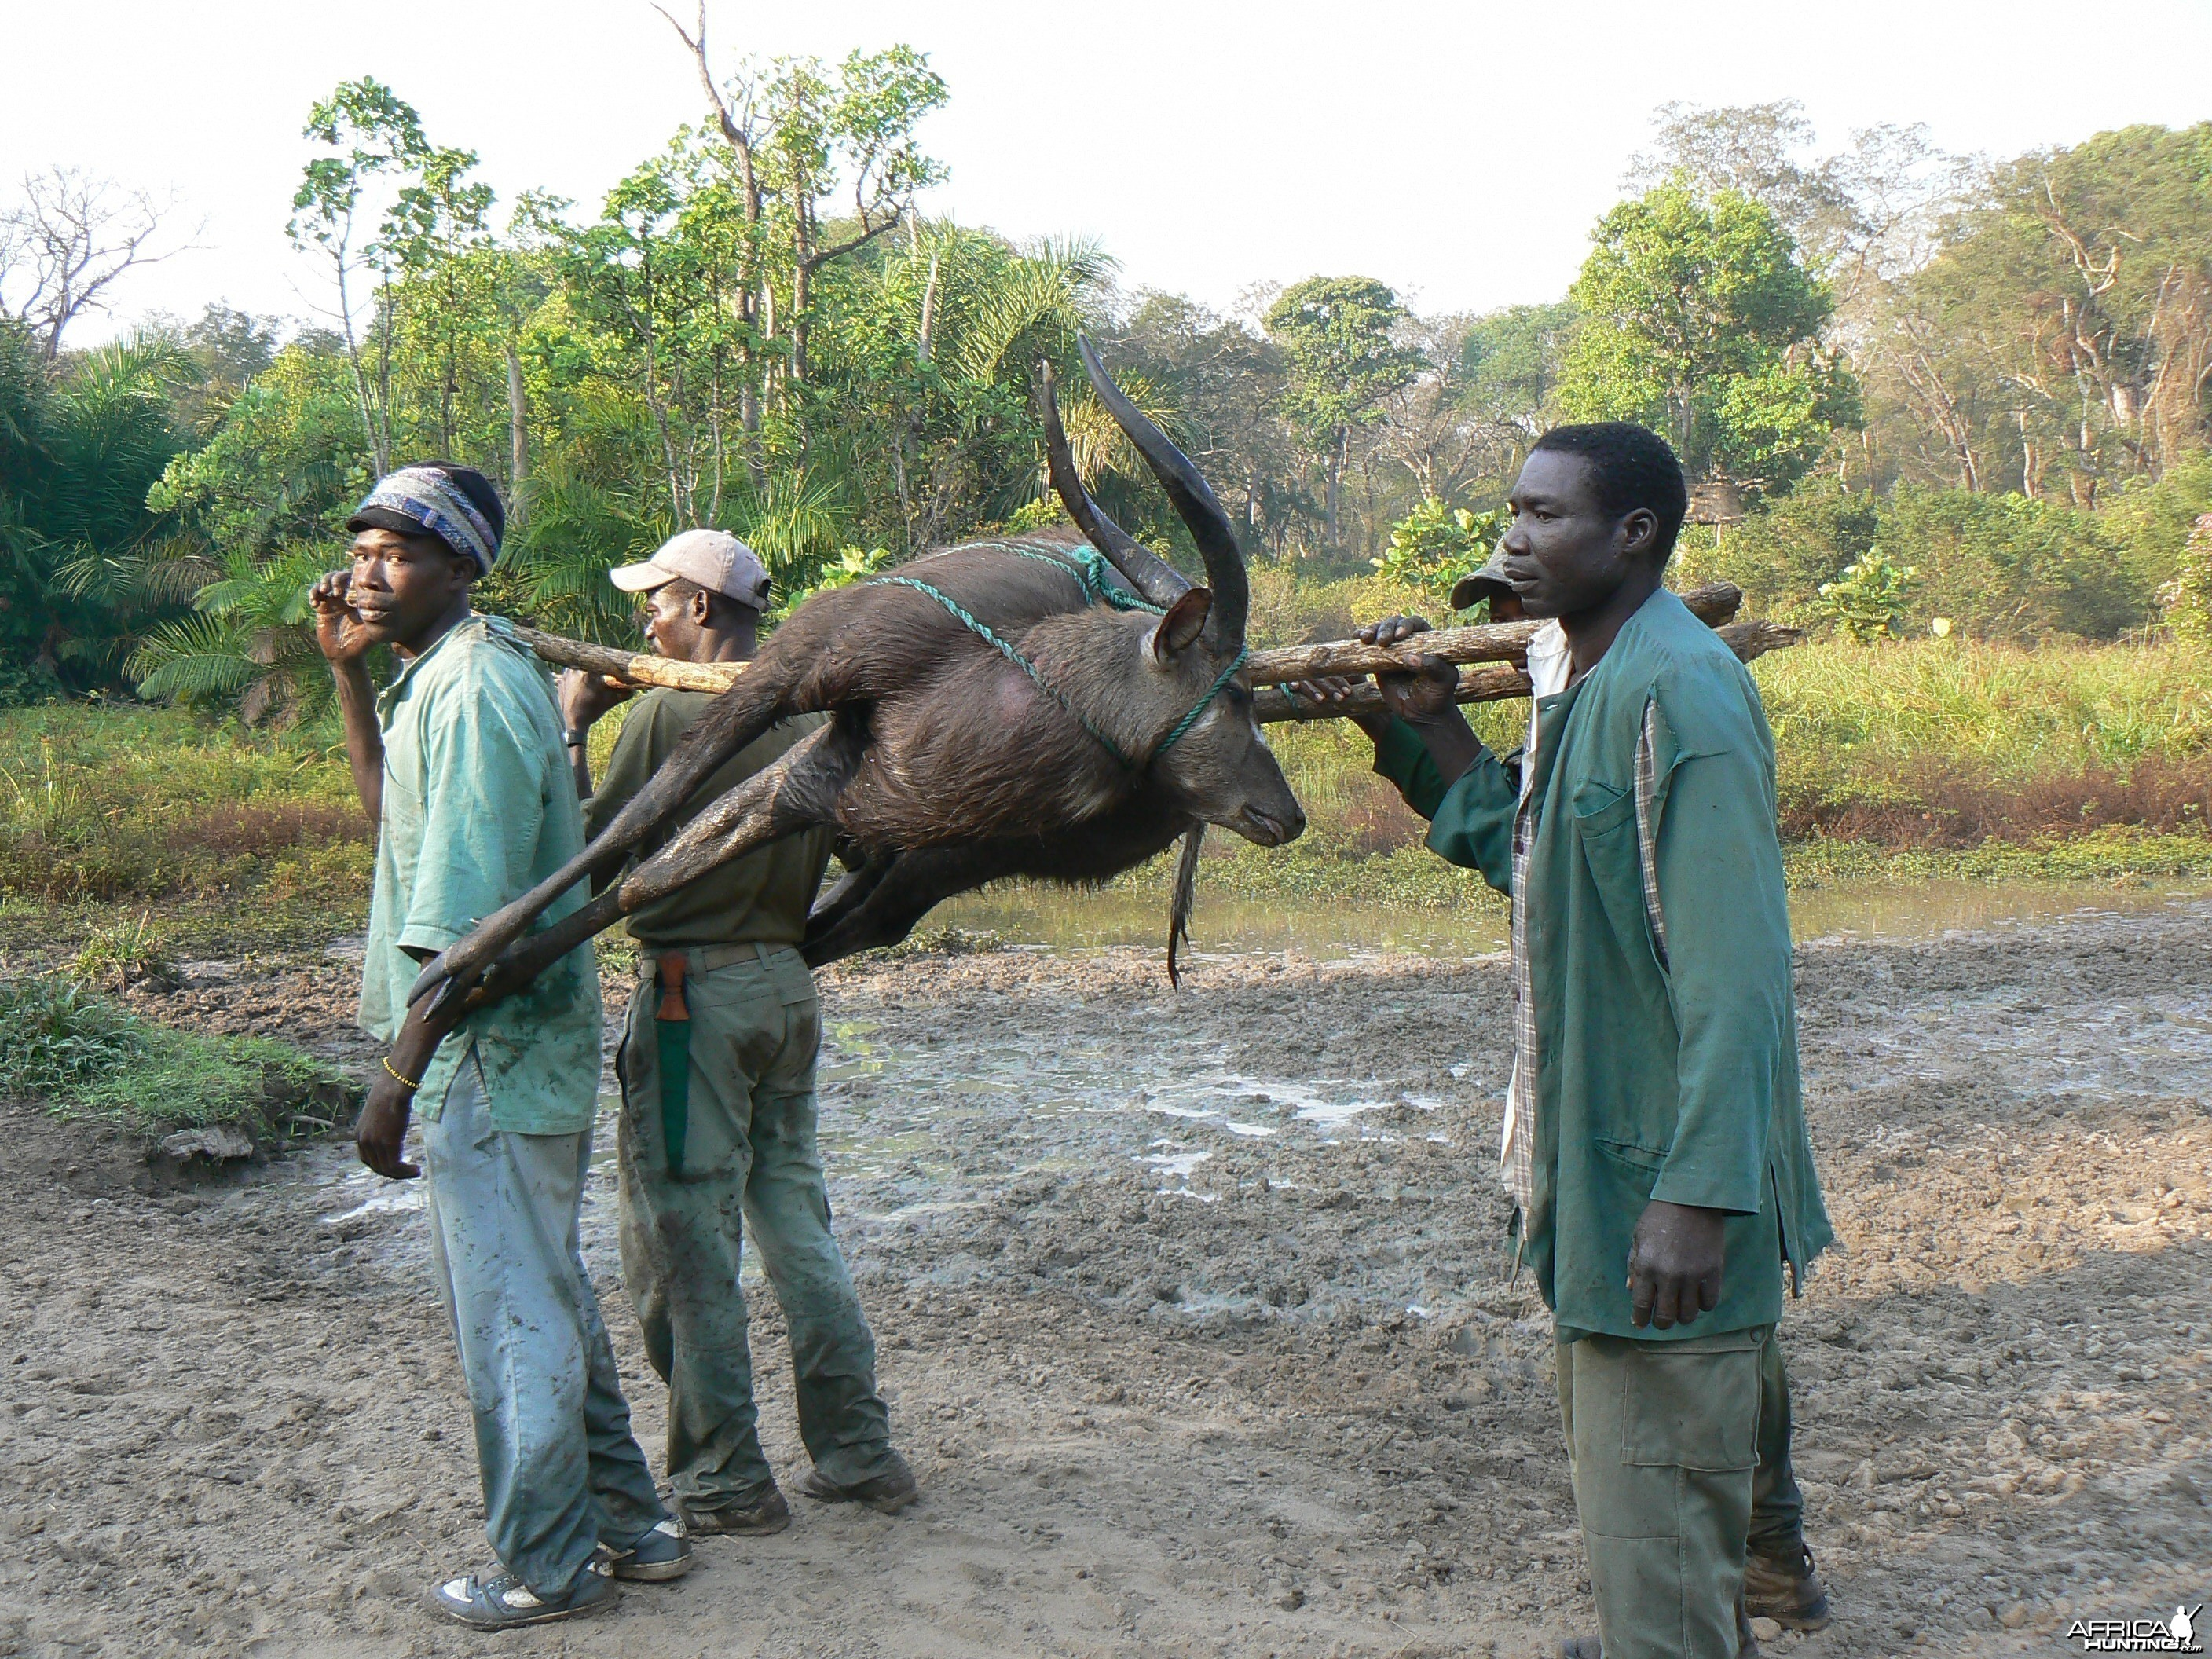 Back to the truck with a sitatunga